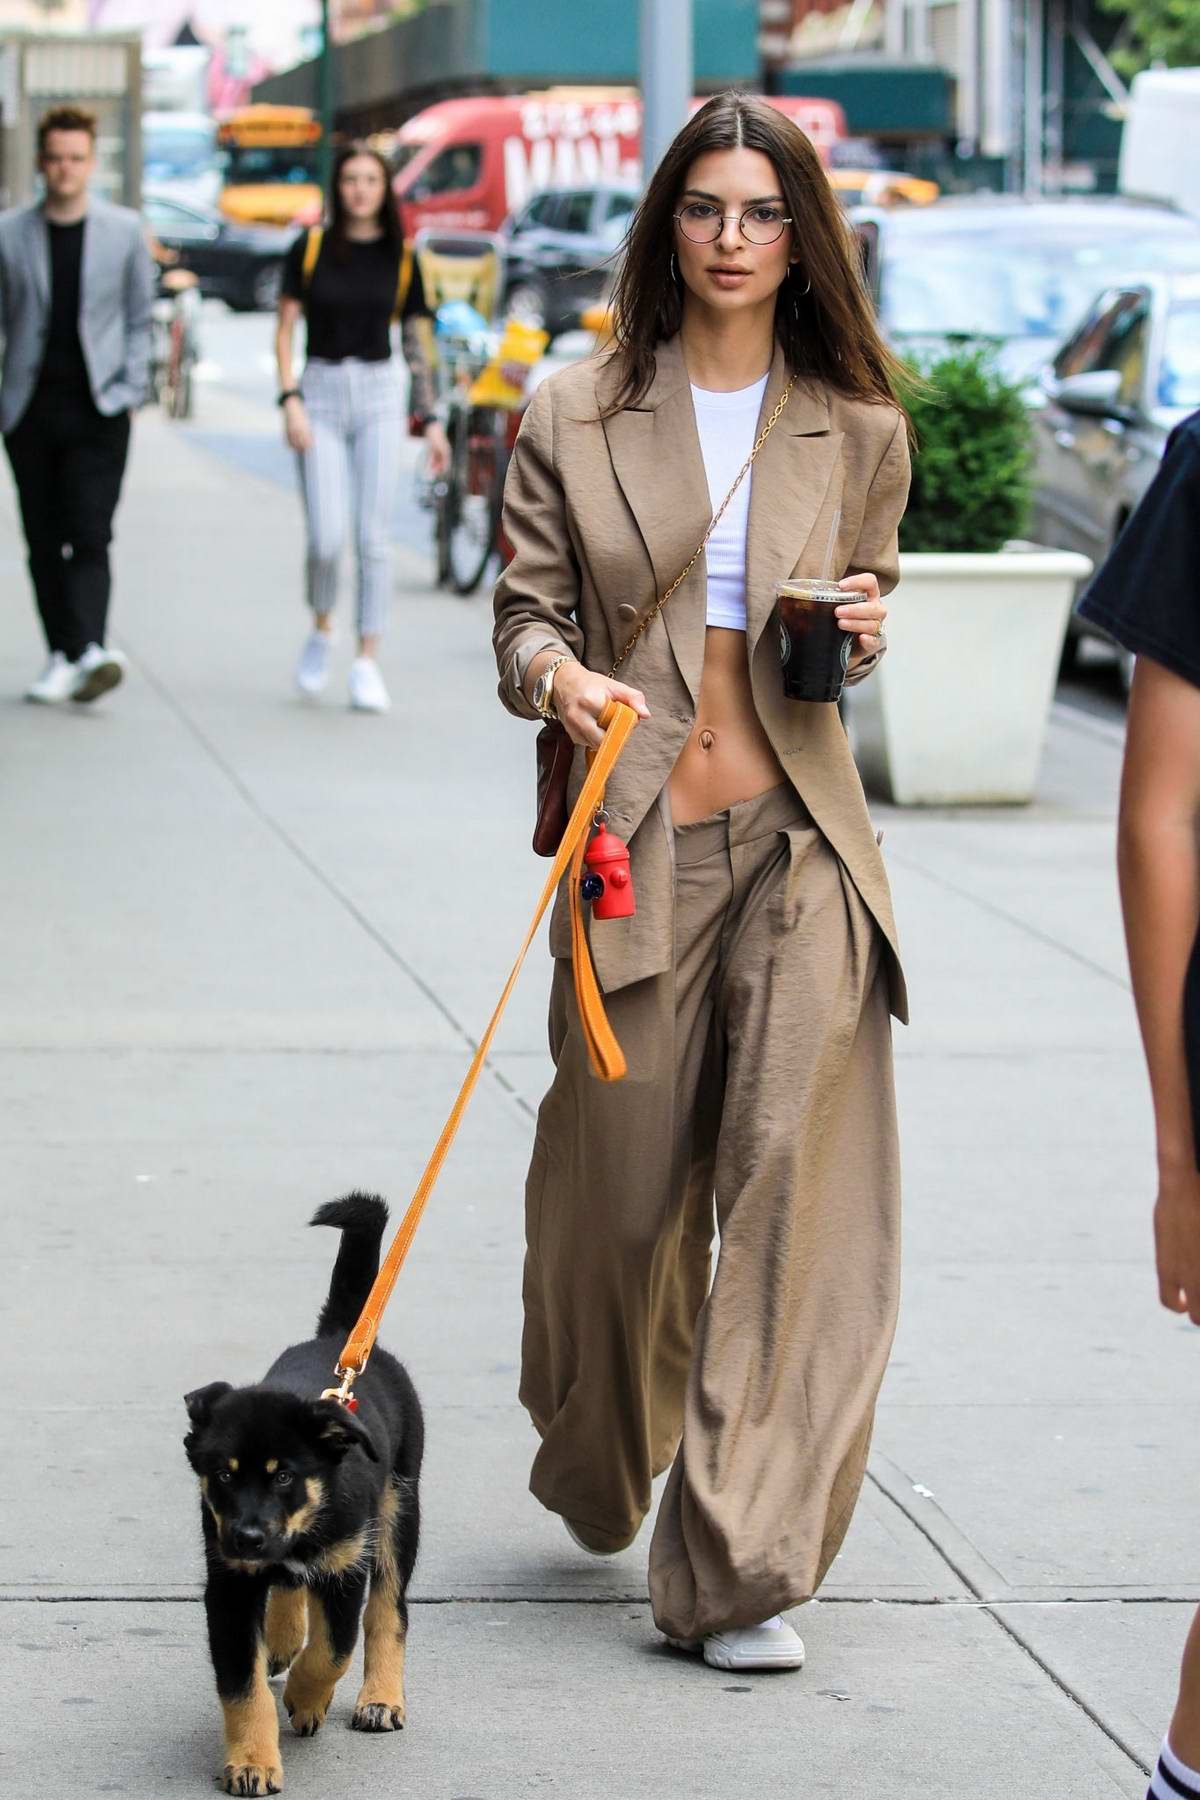 Emily Ratajkowski flaunts her abs in white crop top with an oversized suit while walking her cute pup in New York City